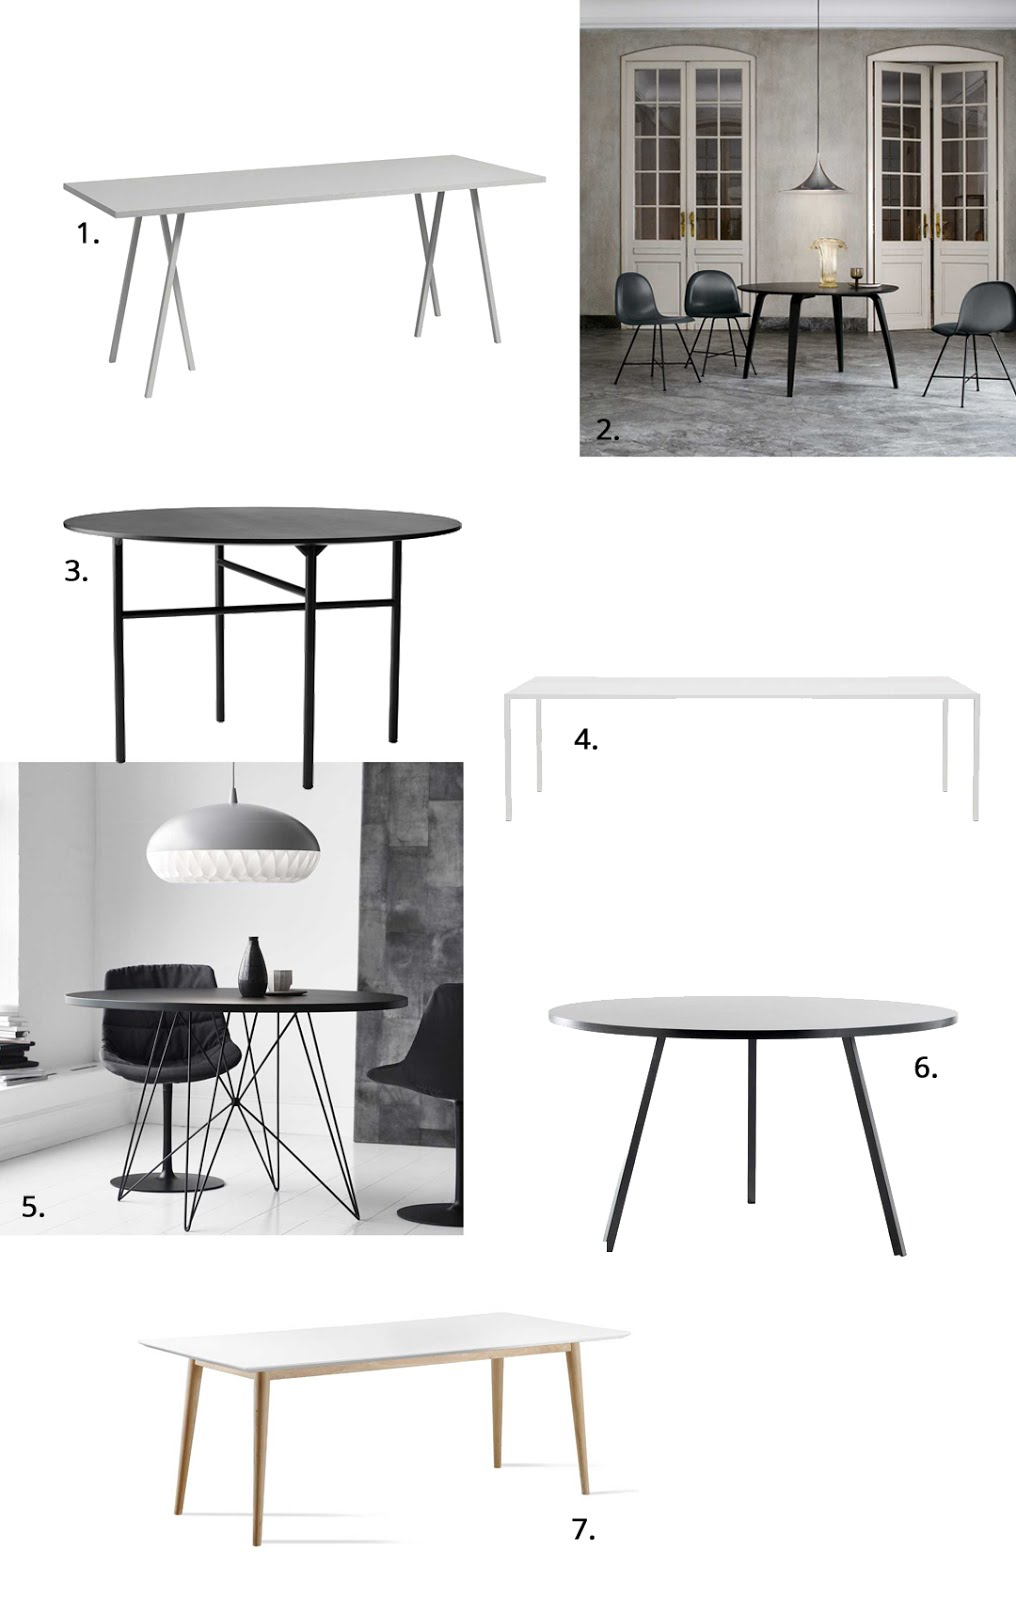 Designer tables, Loopstand Hay, Gubi round, Tense table, XZ3 Magis, Loopstand Hay, Retro Ruijch